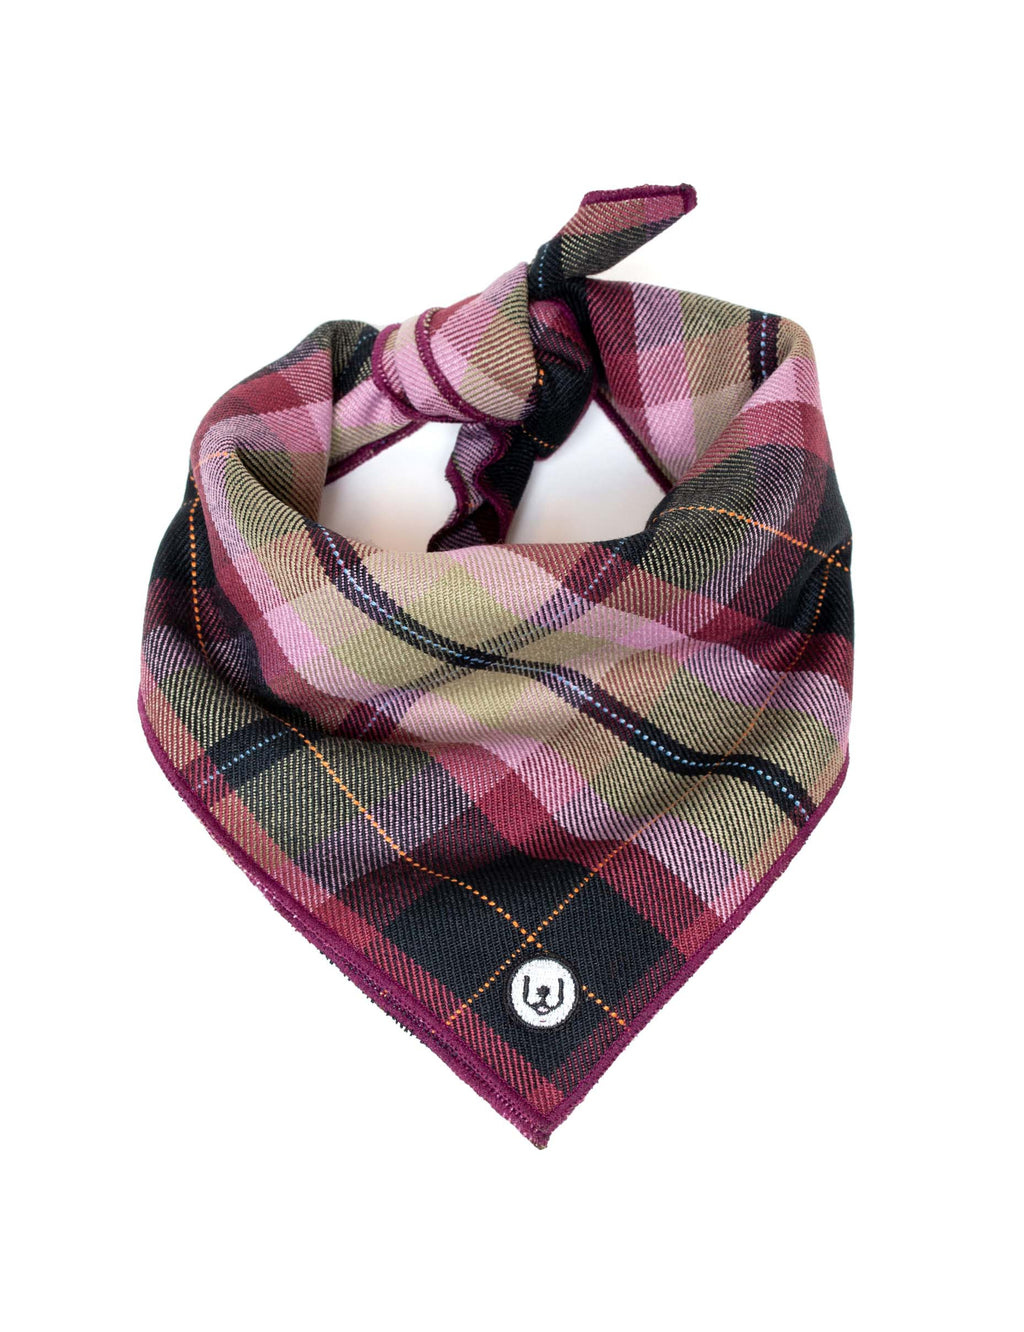 Plum Plaid Dog Bandana